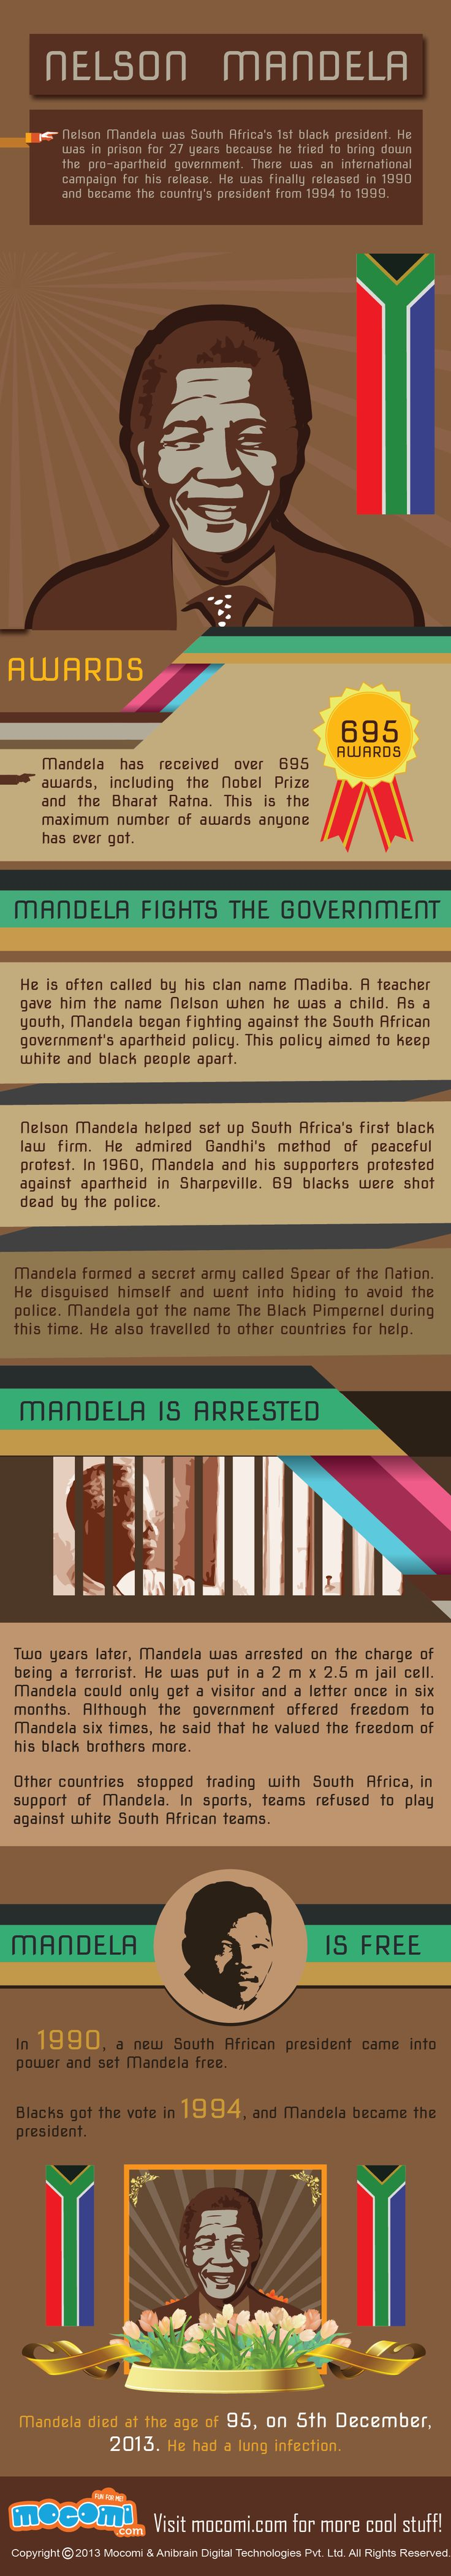 Nelson Mandela was South Africa's 1st black president. He received over 695 awards, including the Nobel Prize and Bharat Ratna. Nelson Mandela Biography - http://mocomi.com/nelson-mandela-biography/